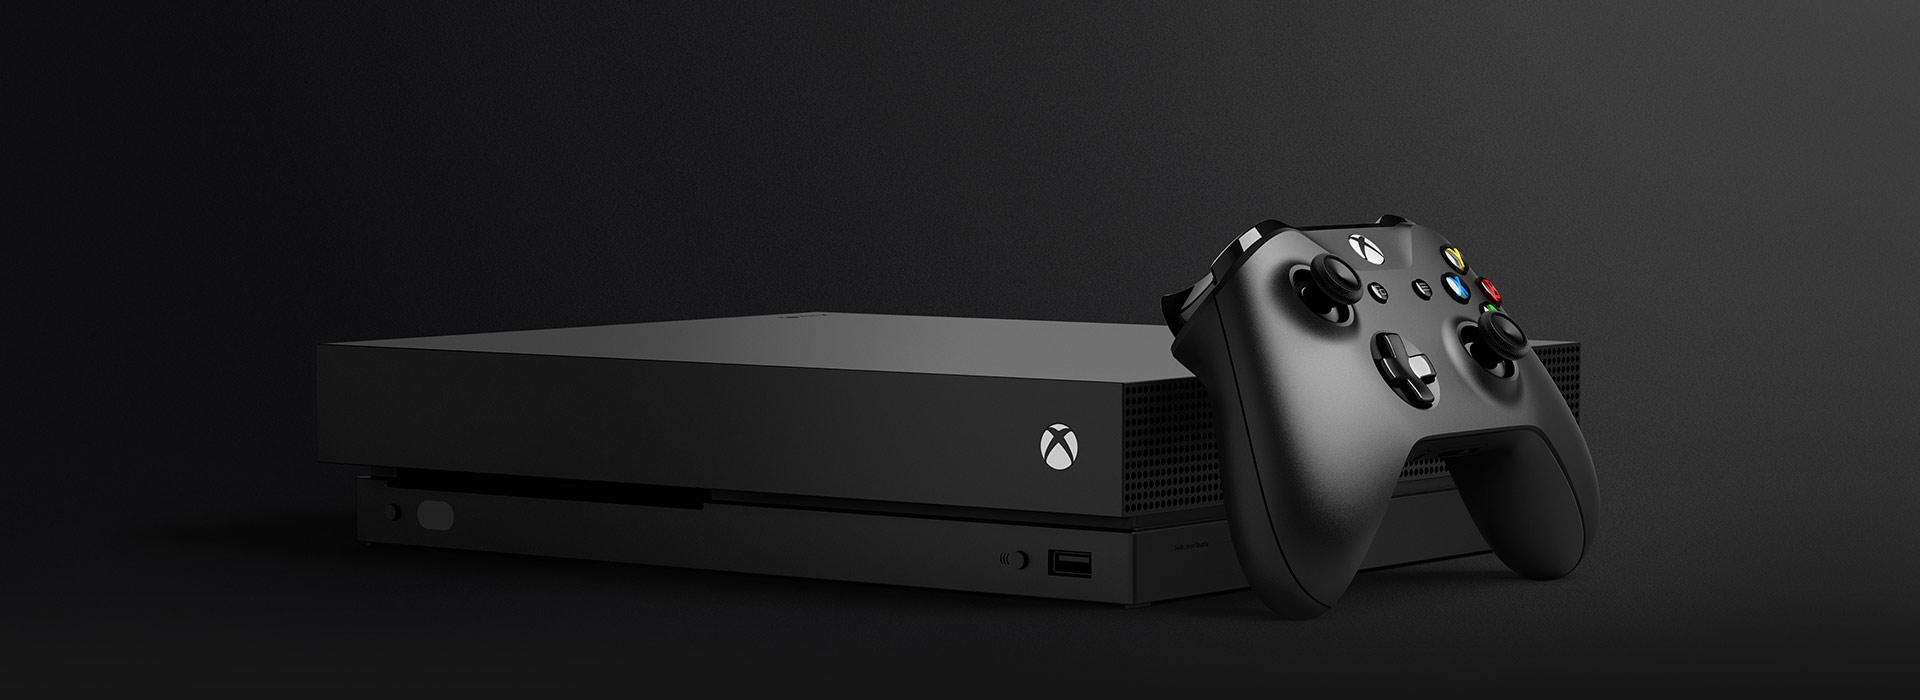 Xbox One X med Xbox One Wireless Controller